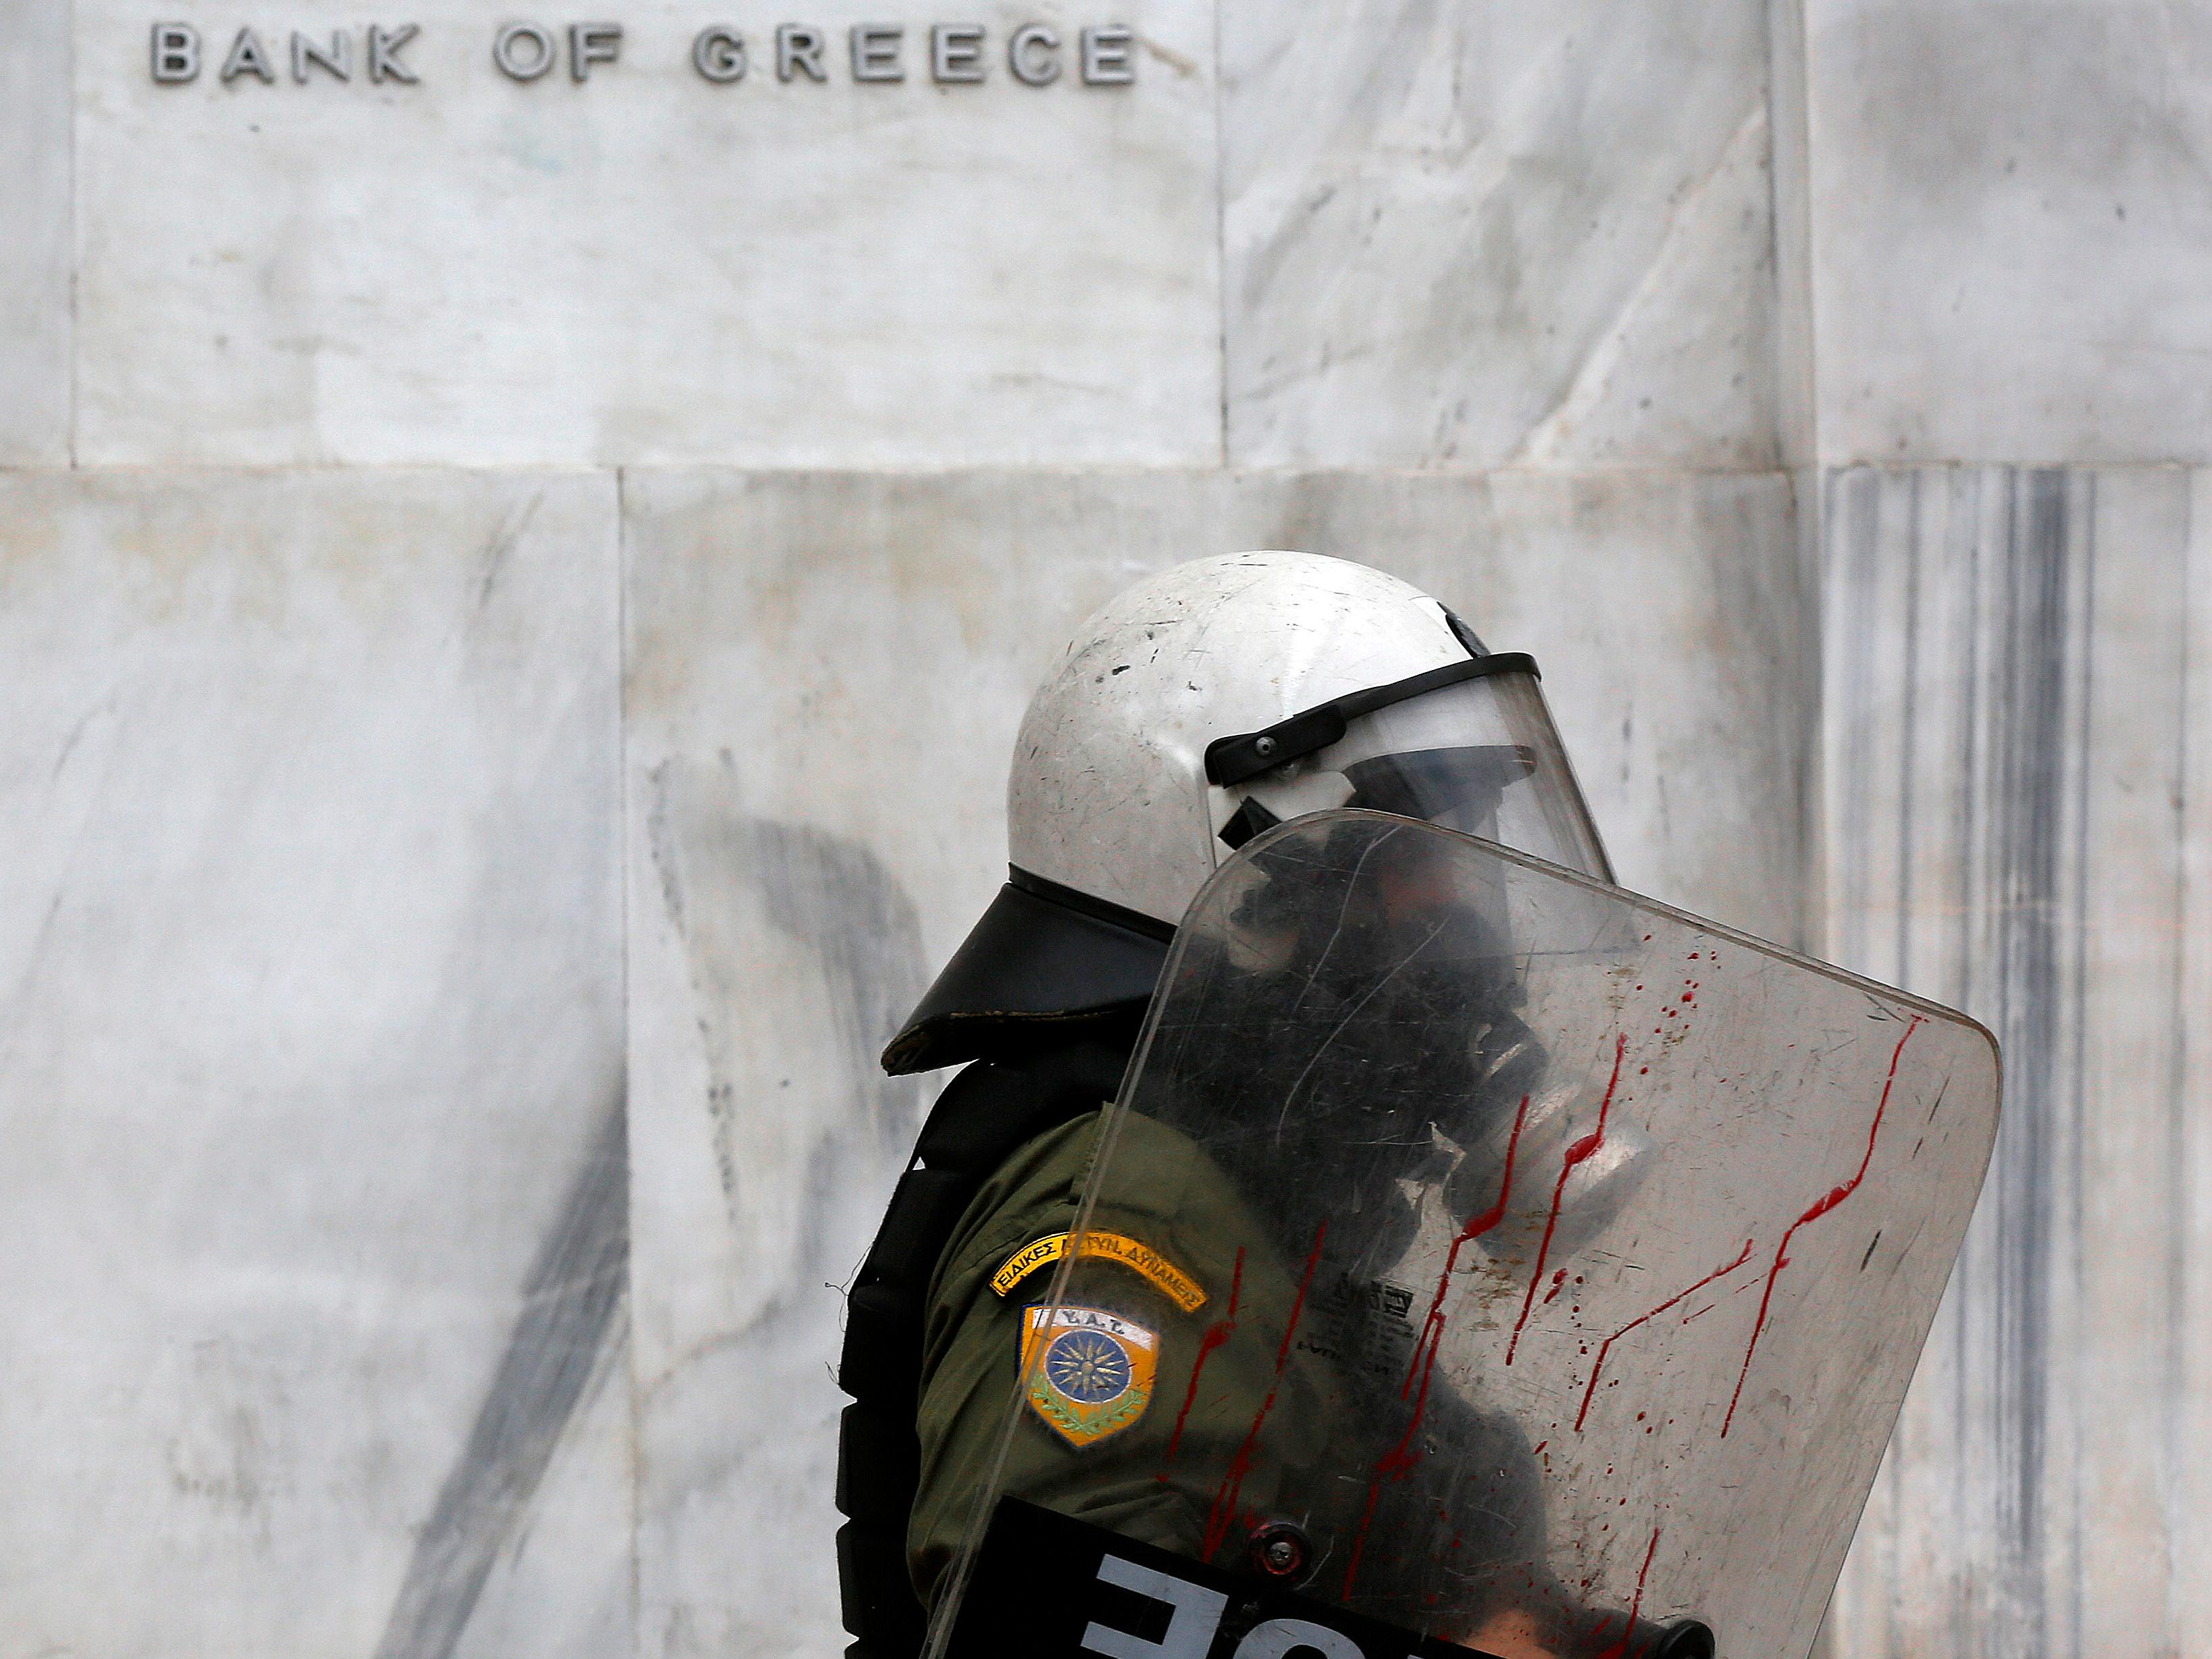 Greek stocks are crashing and austerity is tearing the country apart